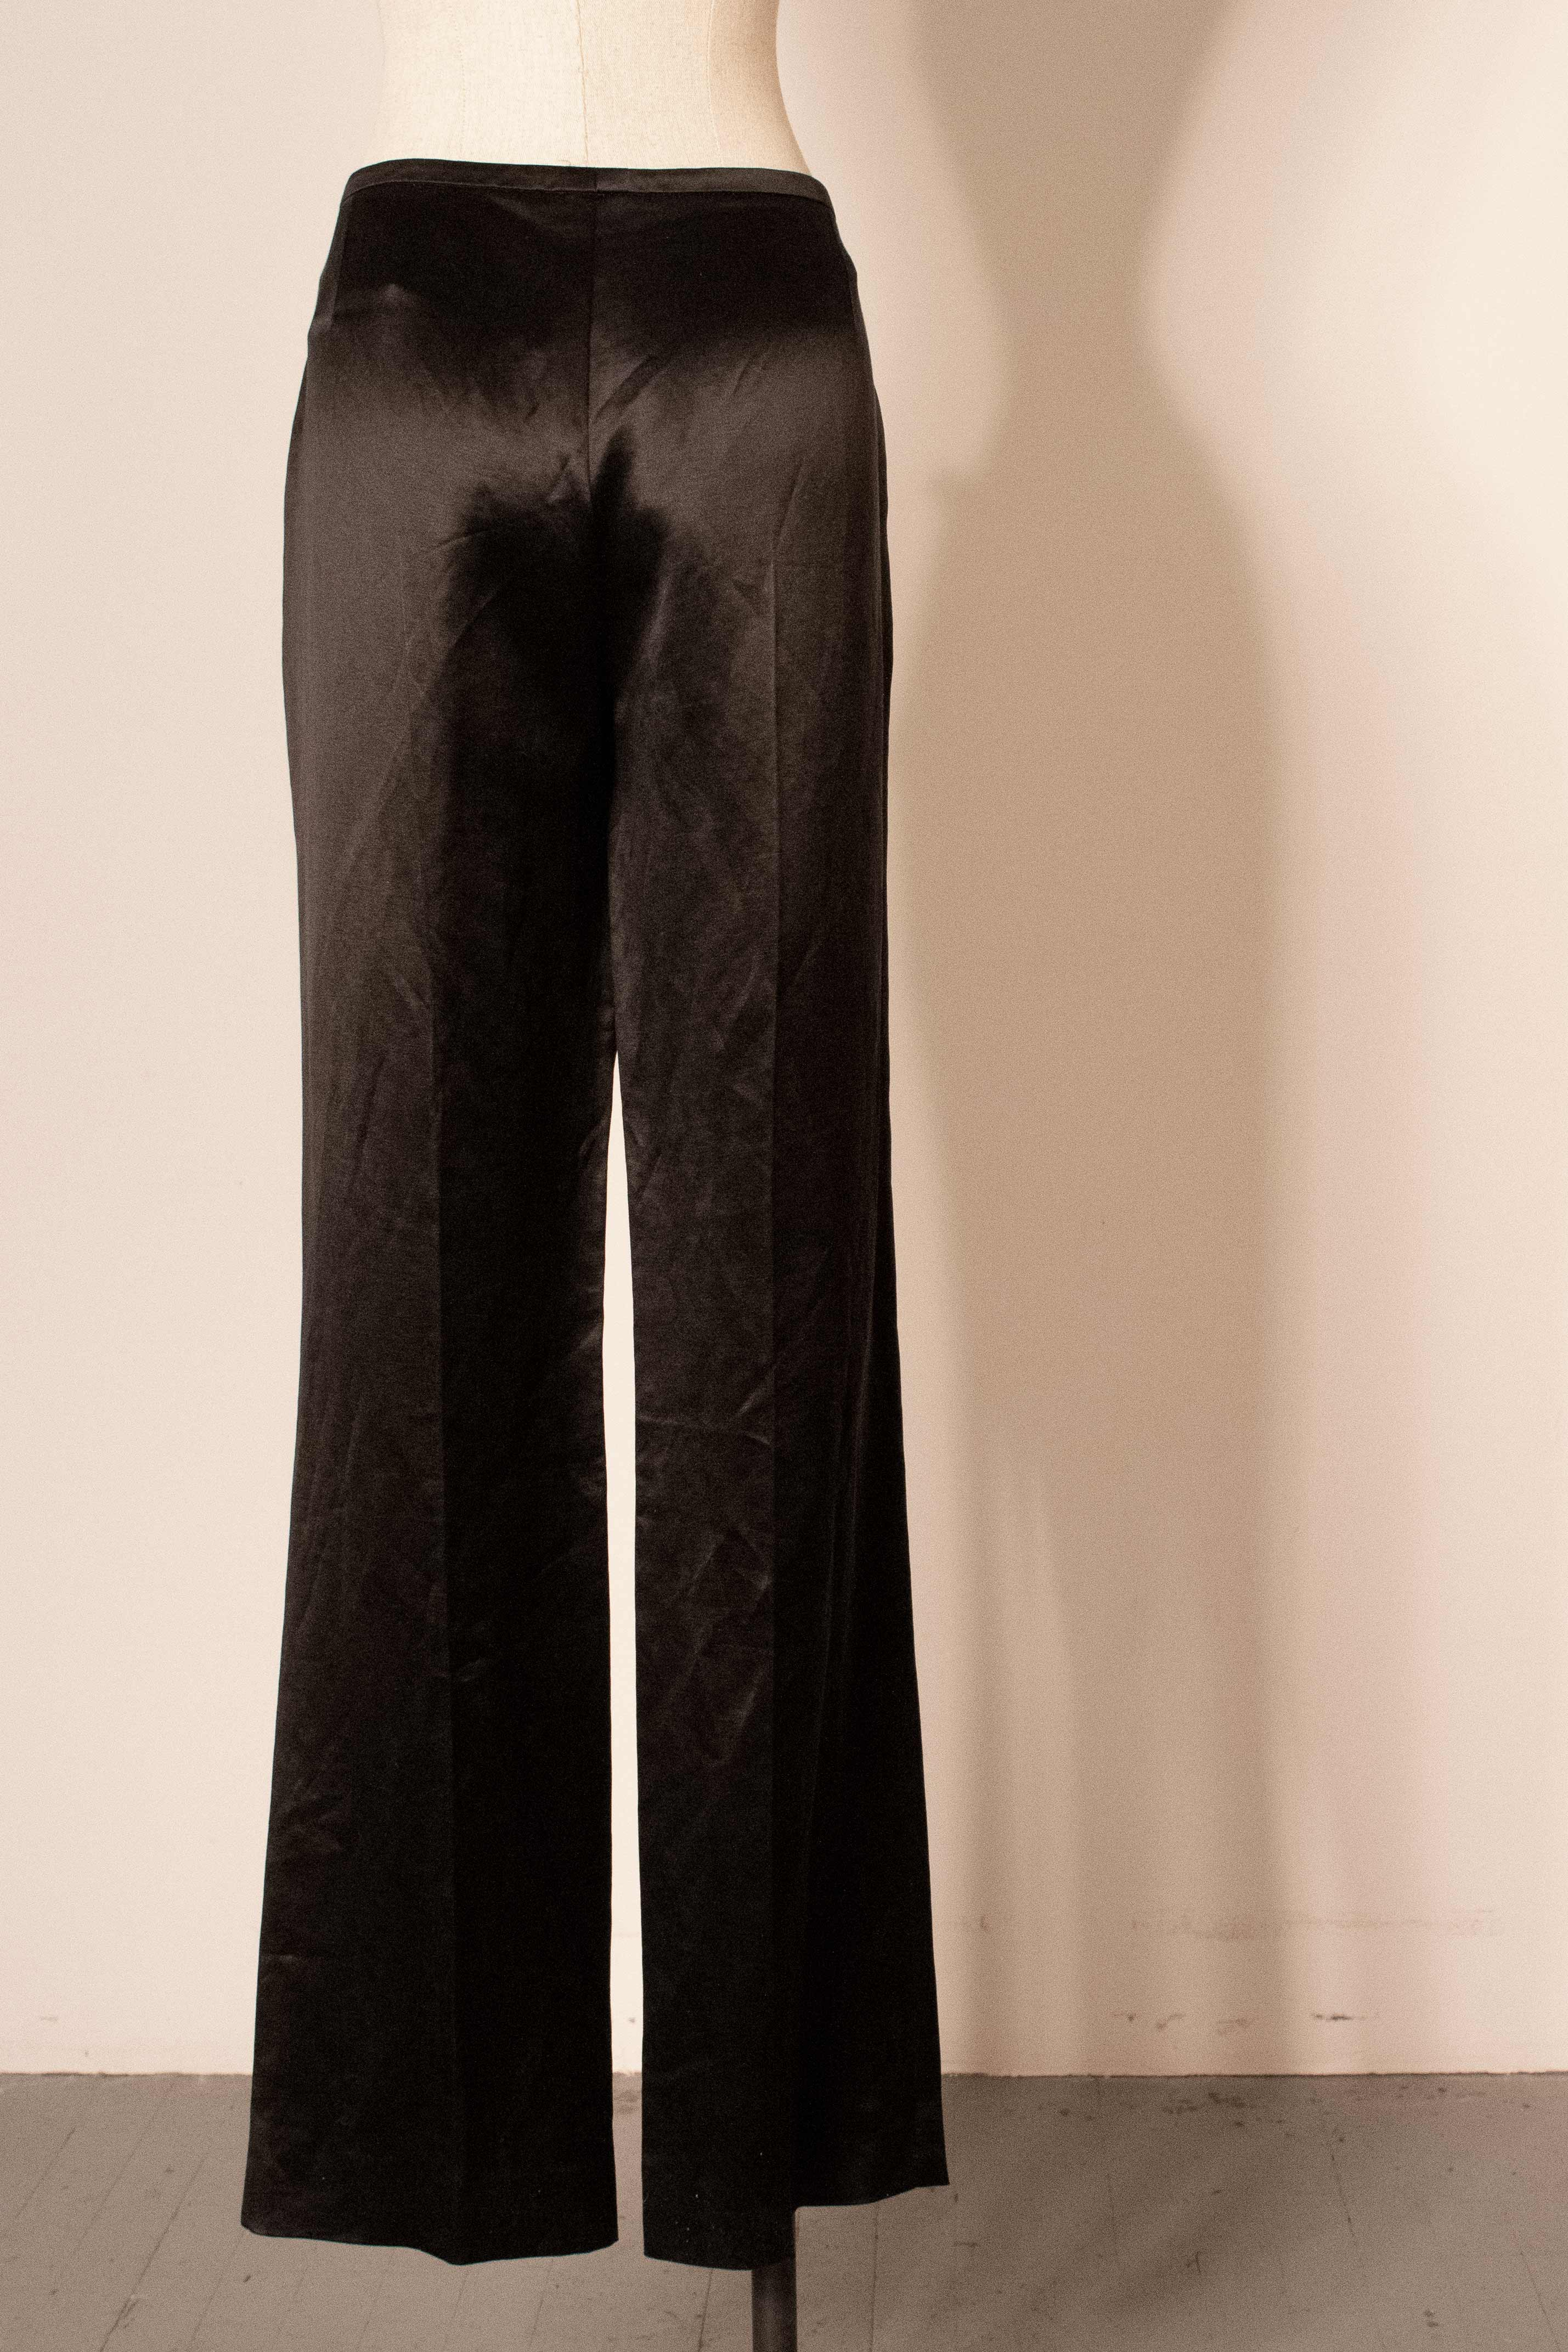 Hermes (by Gaultier) silk satin belted trousers